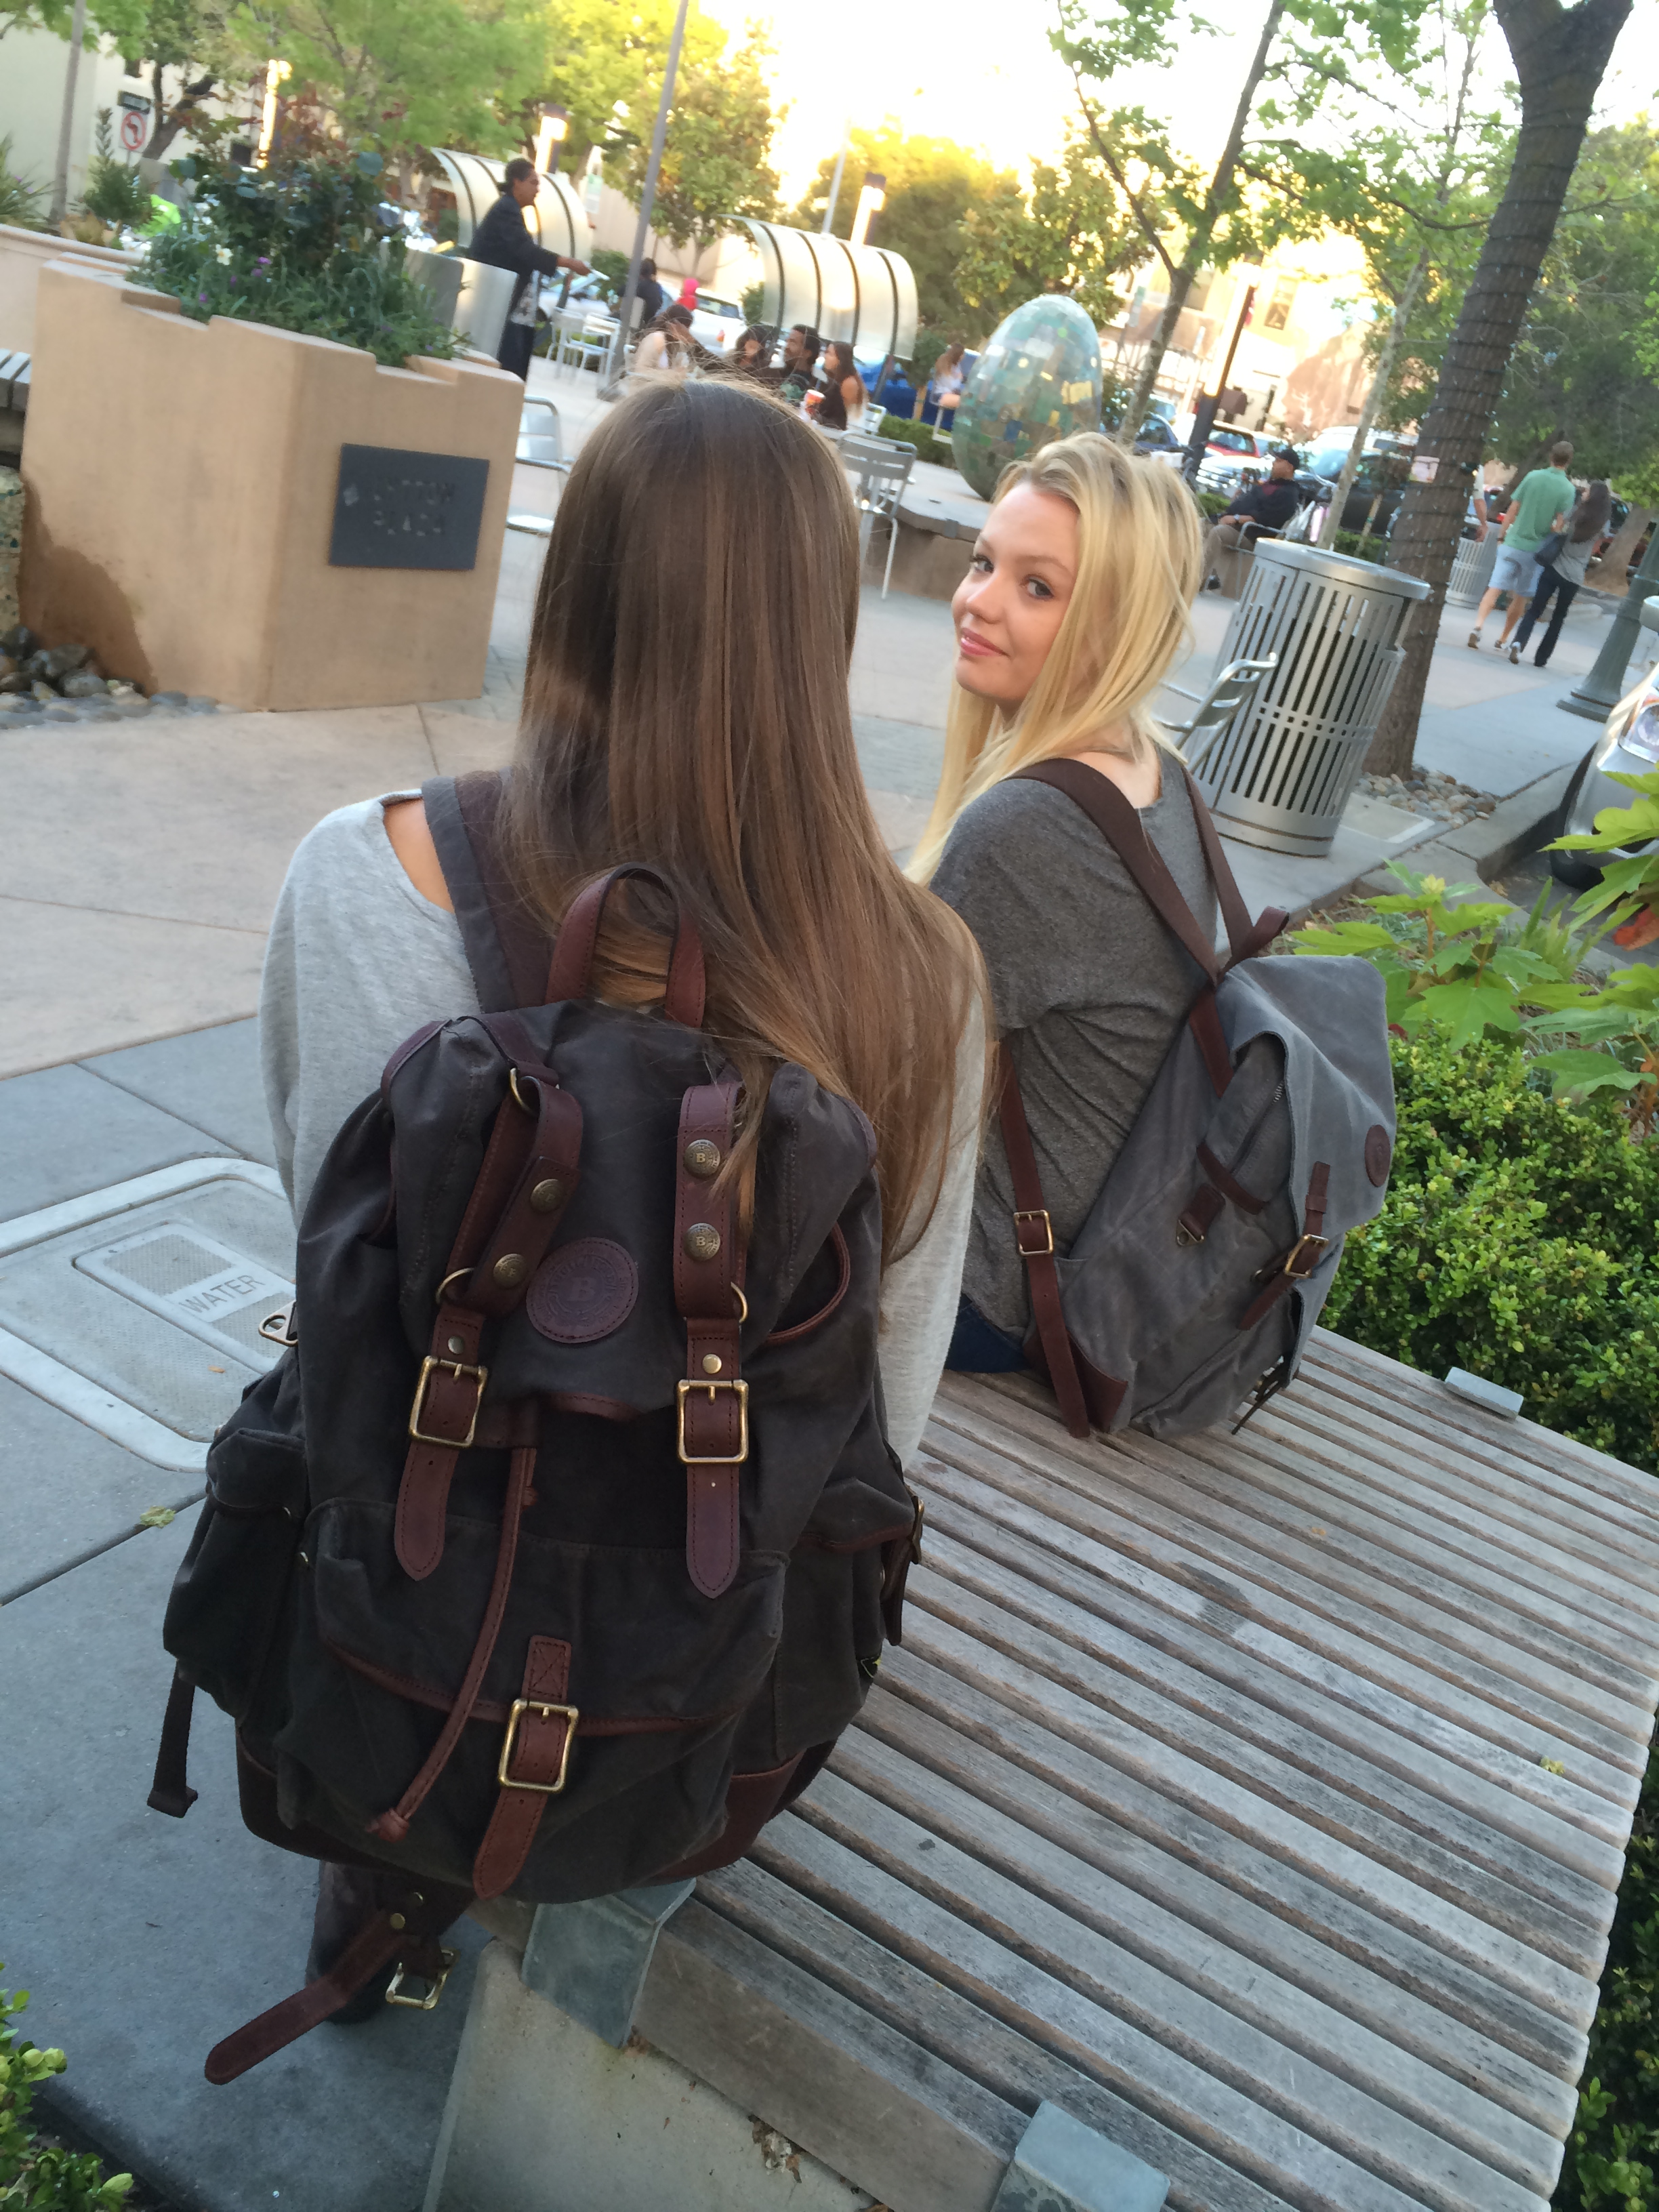 Builford: Top of College Backpack Brands | D. Editor